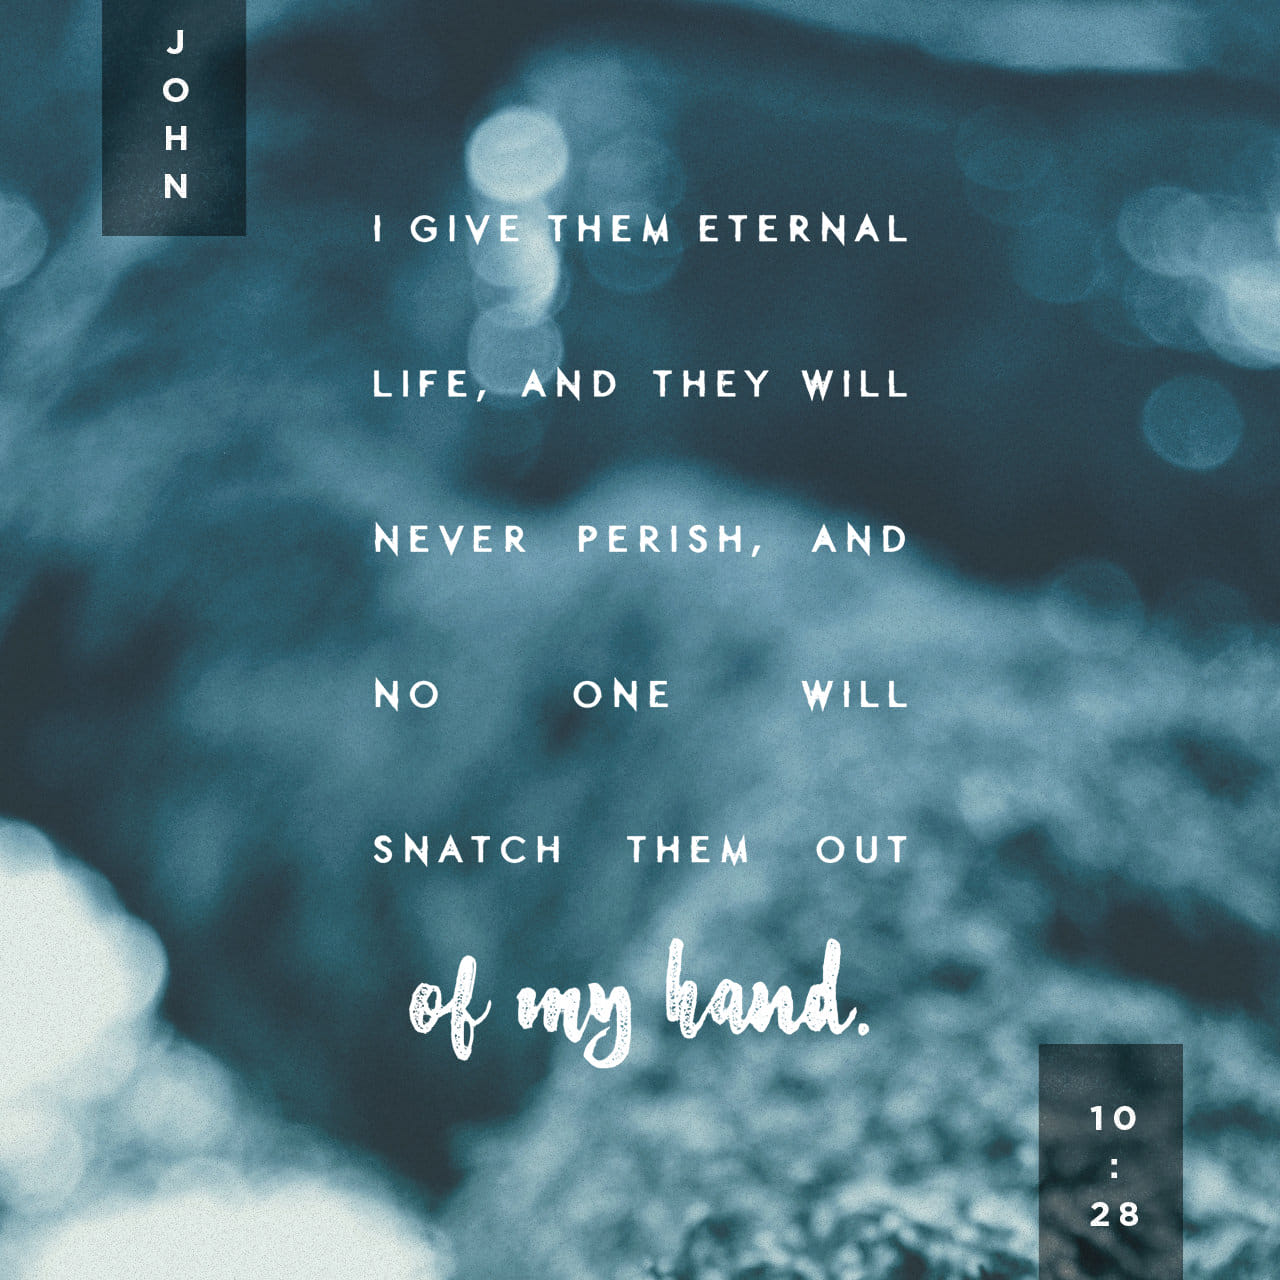 John 10:28 And I give unto them eternal life